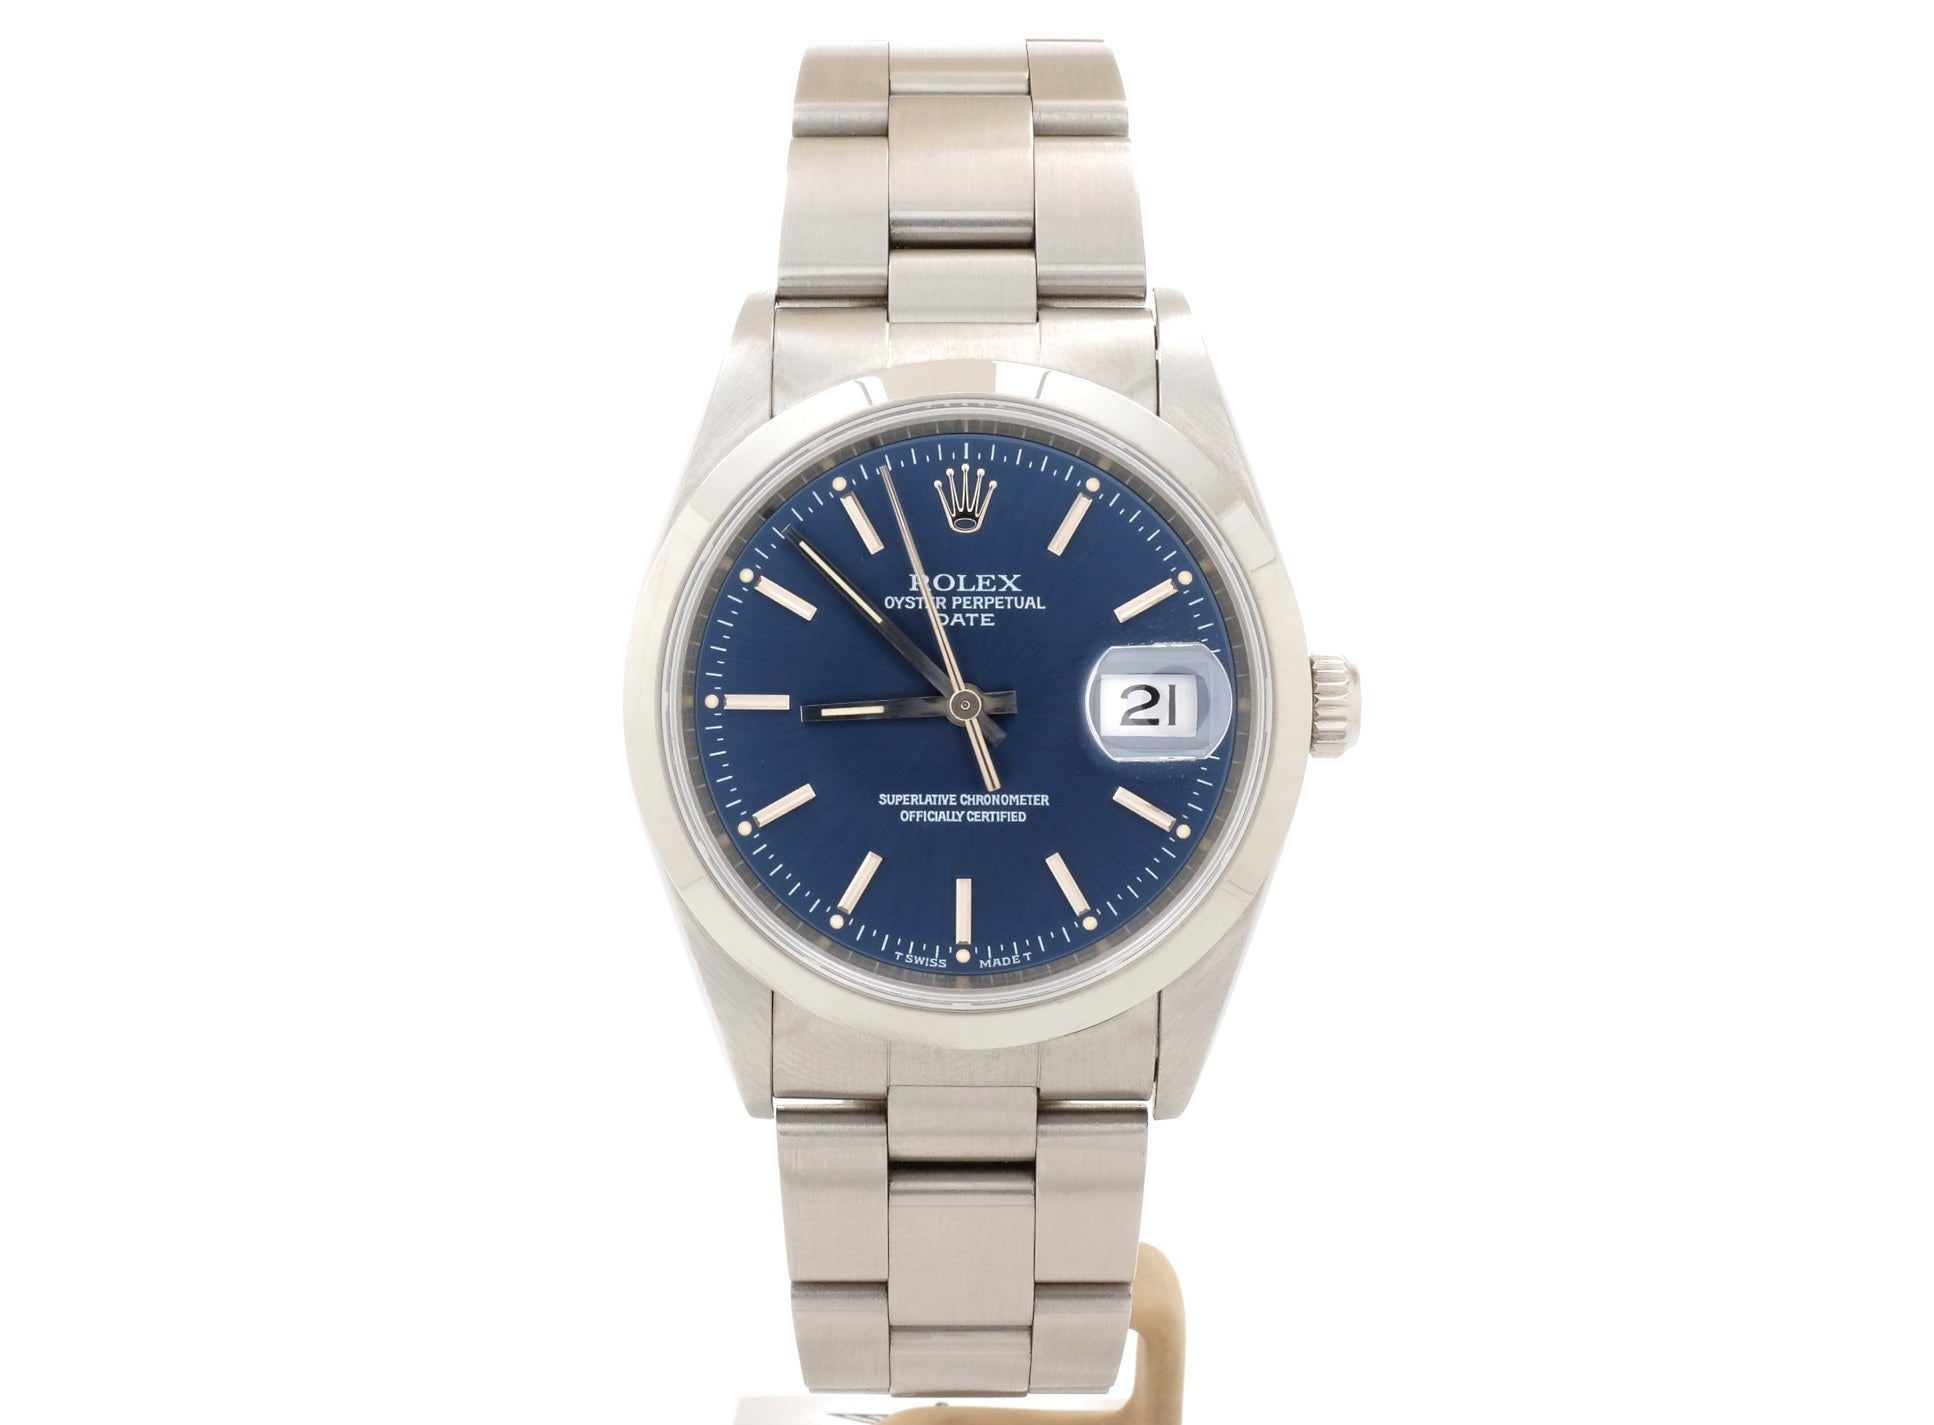 Rolex DATE Model 15200 with Dark Blue Dial